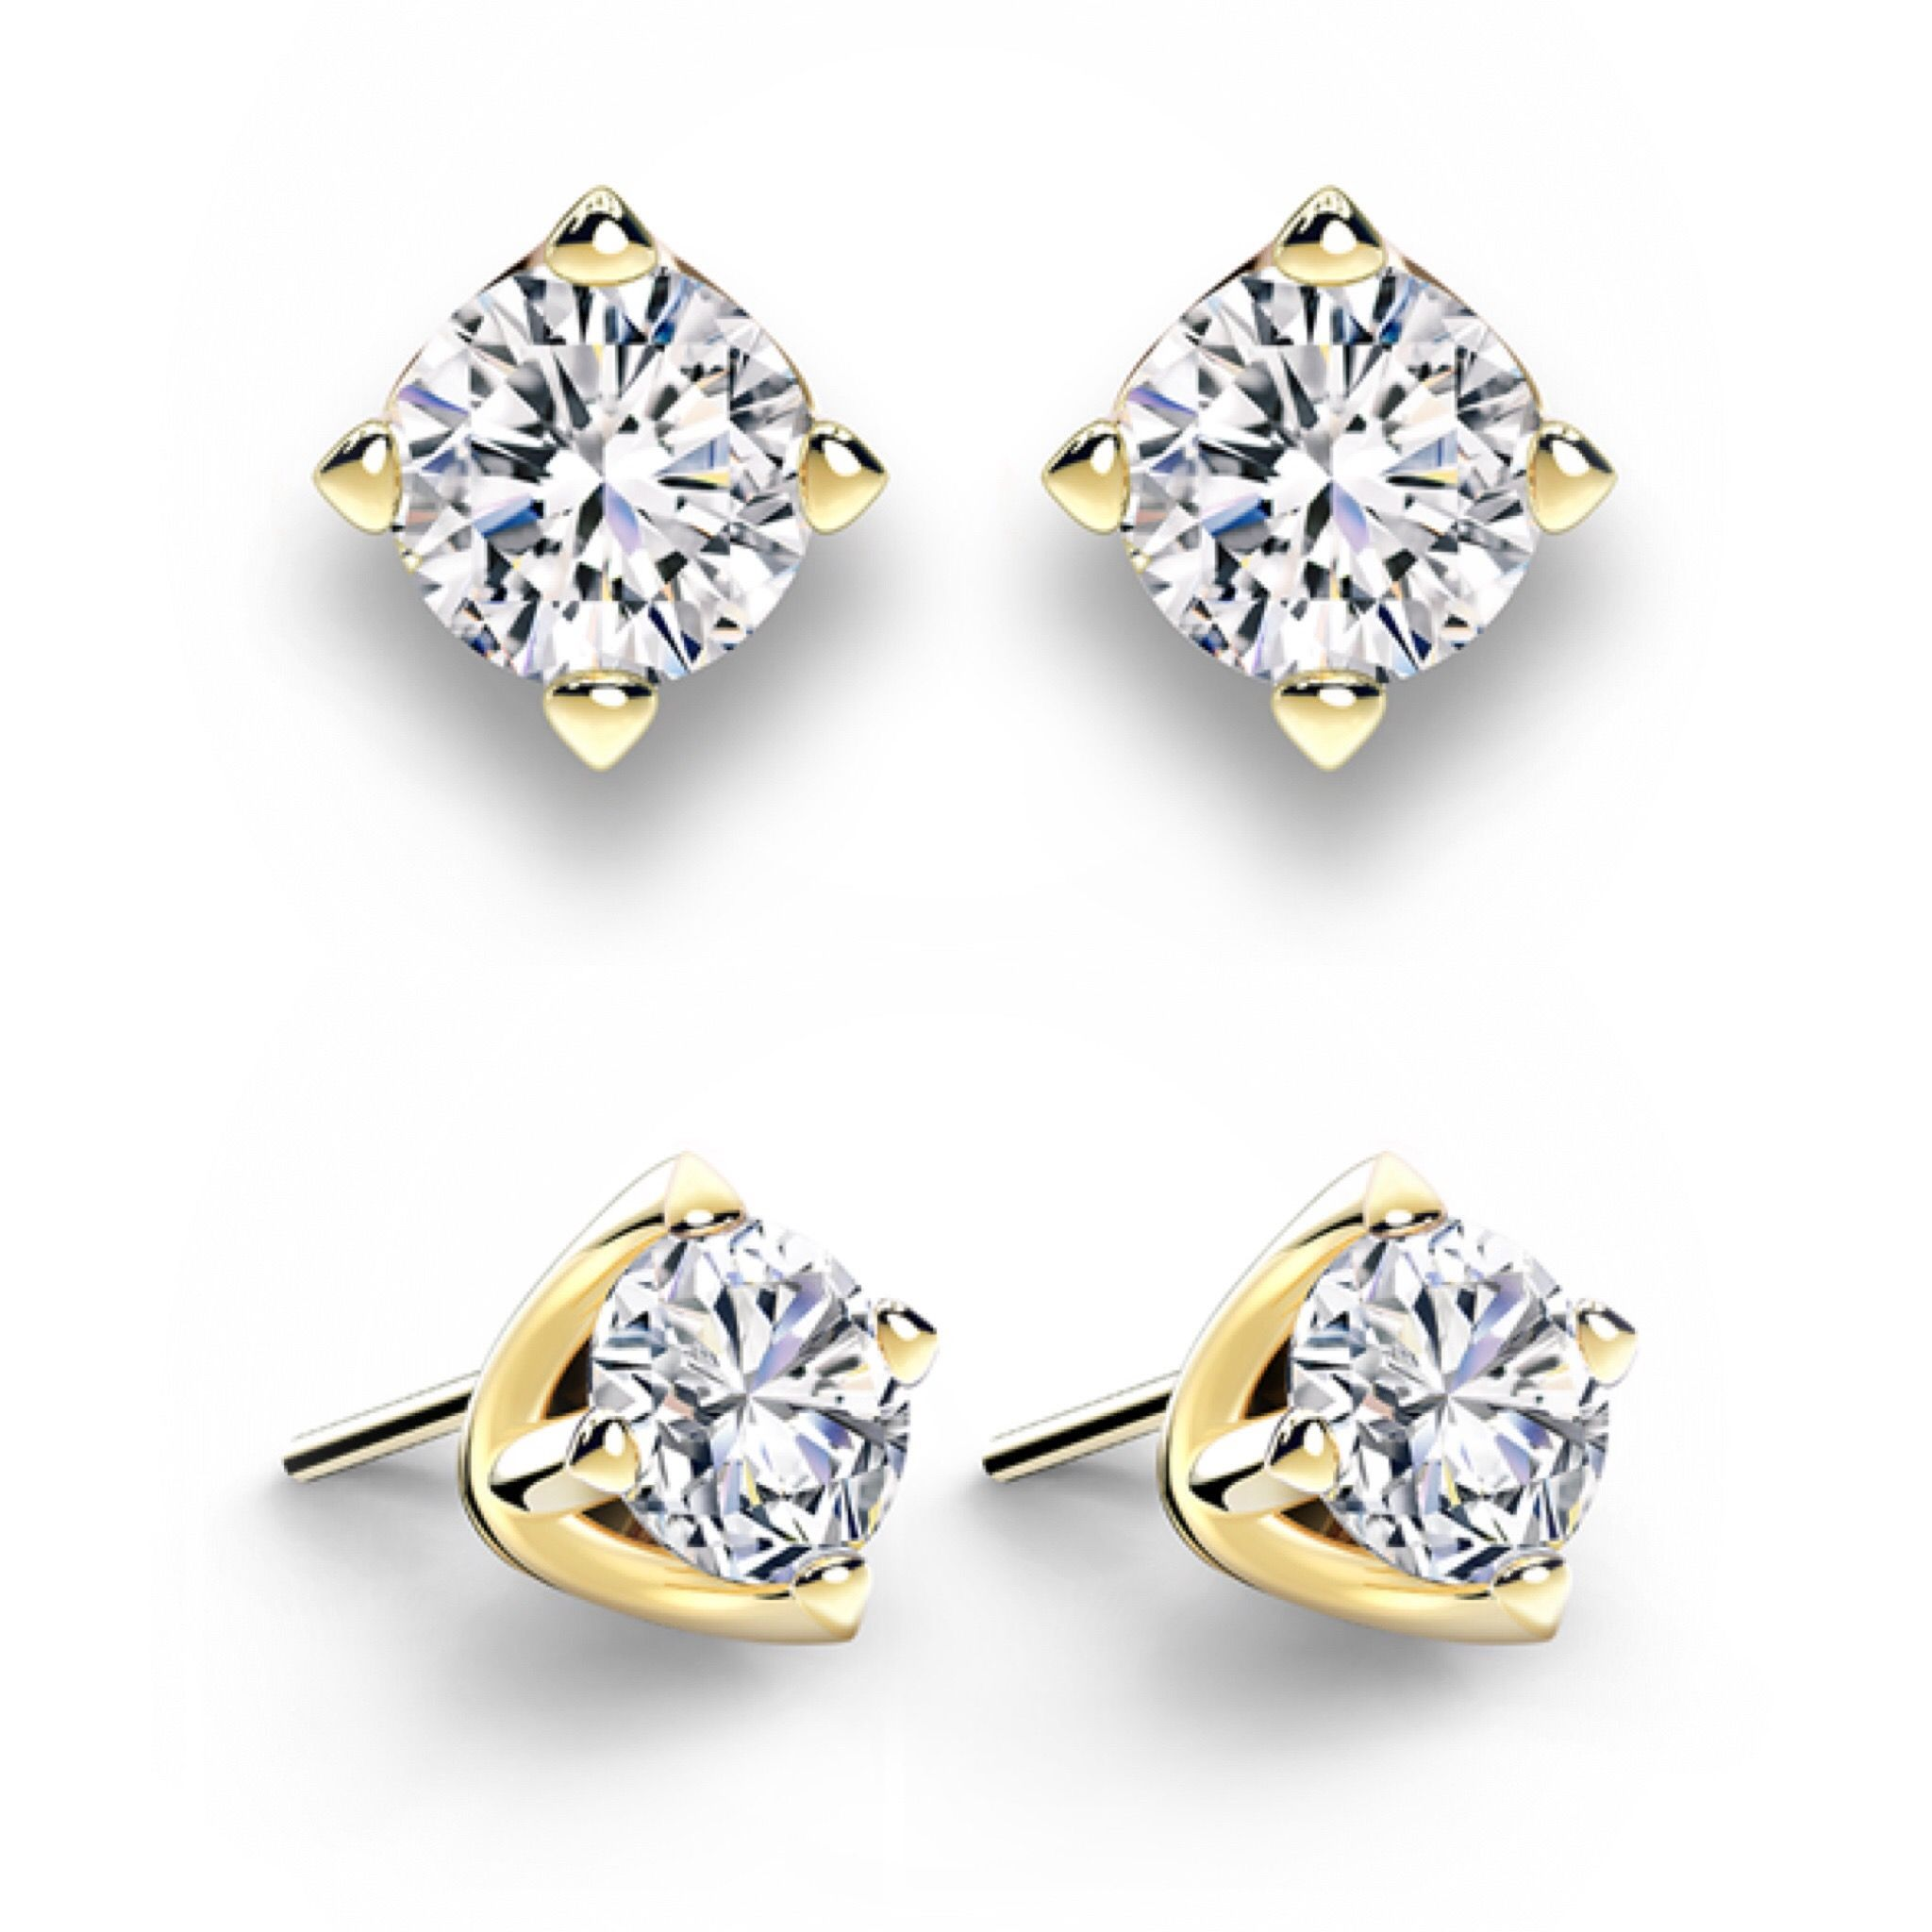 diamond gold ct certified earrings princess white colorless cut pin solitaire w t igl